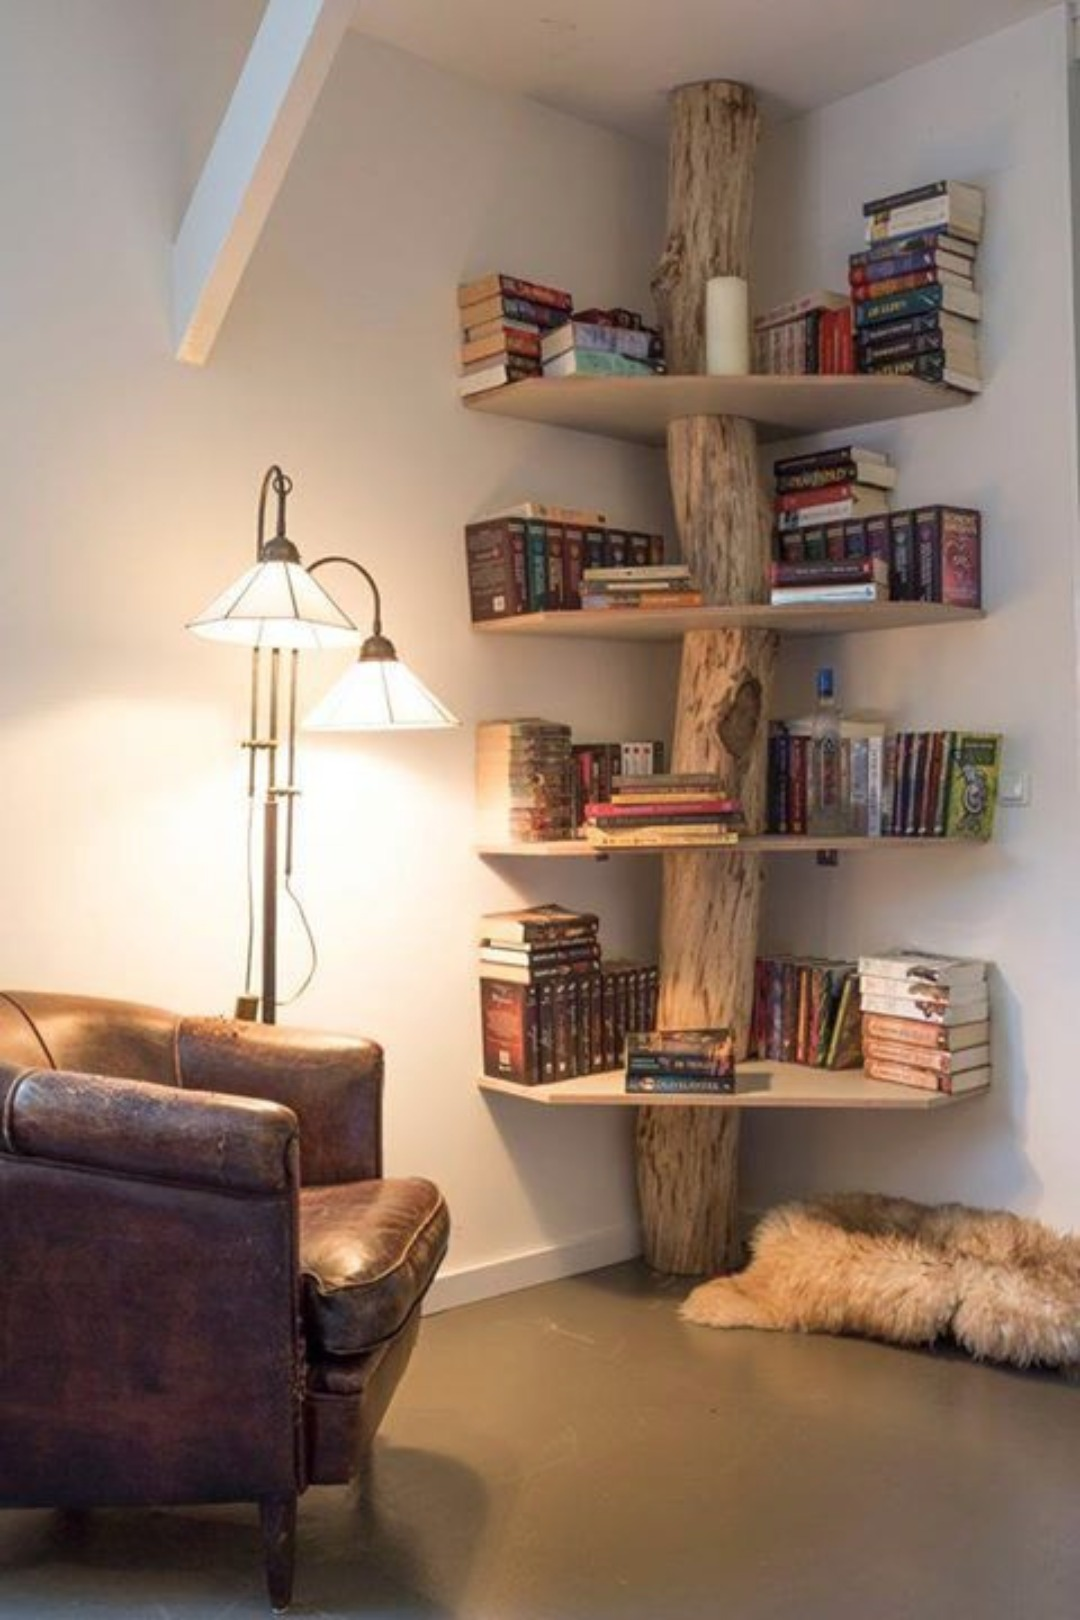 5. Corner Bookcase for a Hobbit Hole